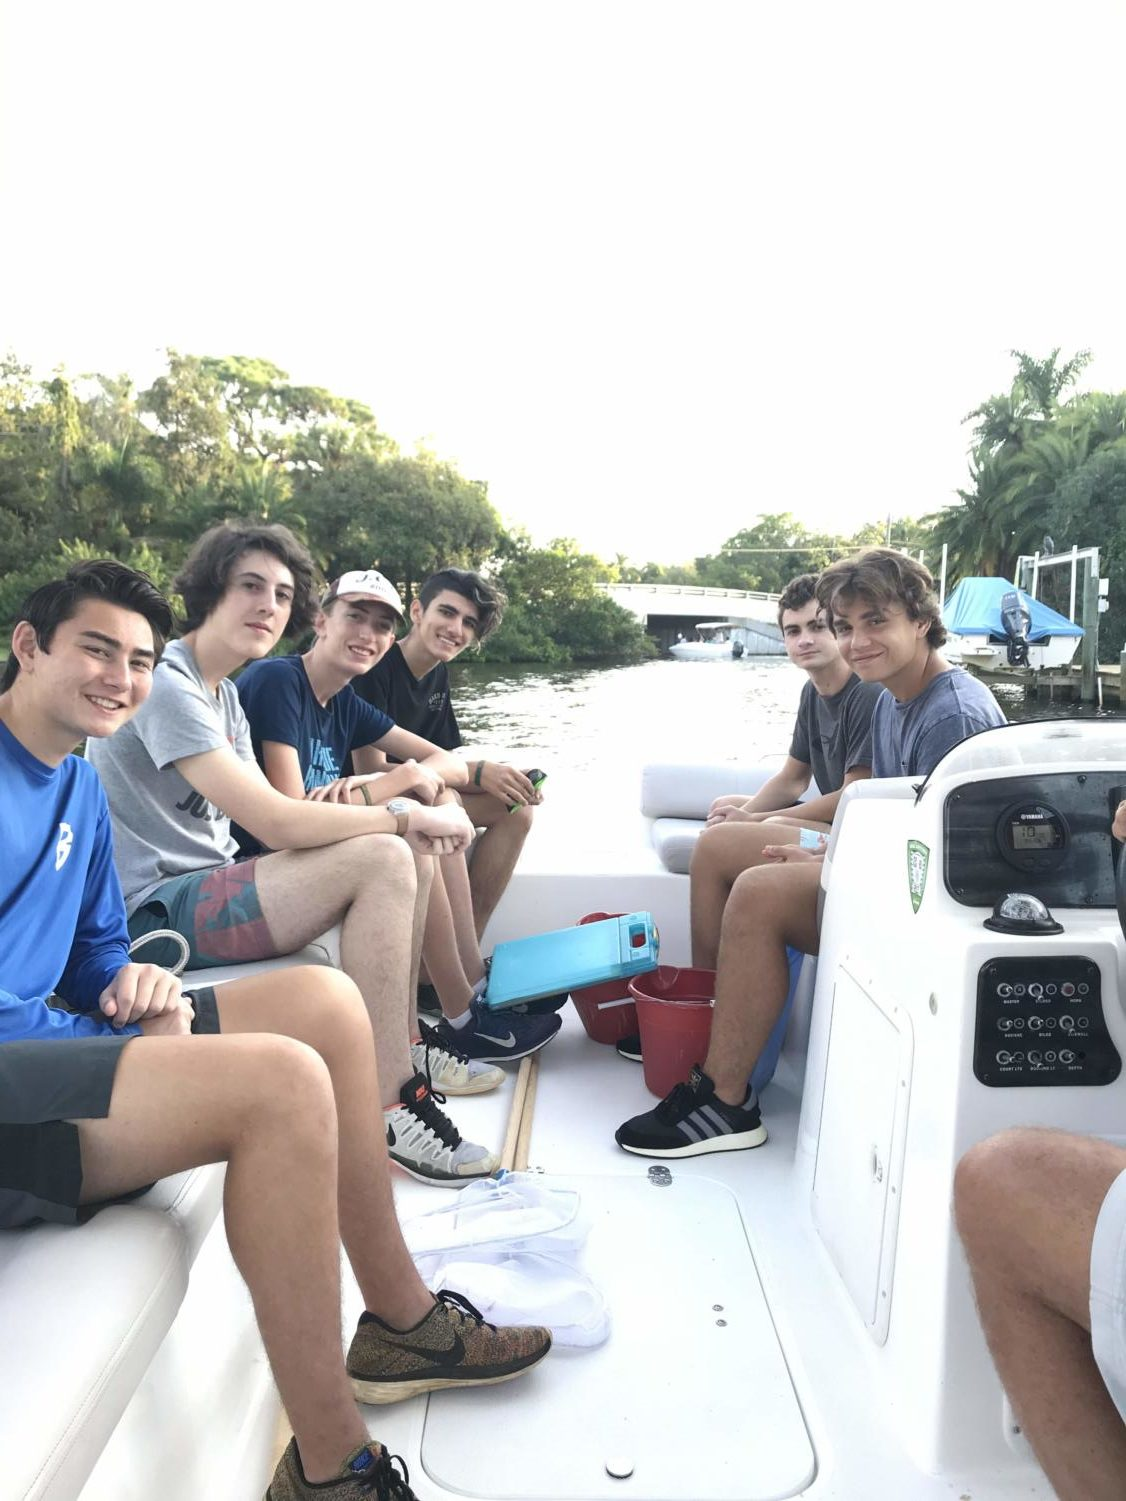 A+boat+trip+with+the+Marine+Science+class--+a+reel+catch%21